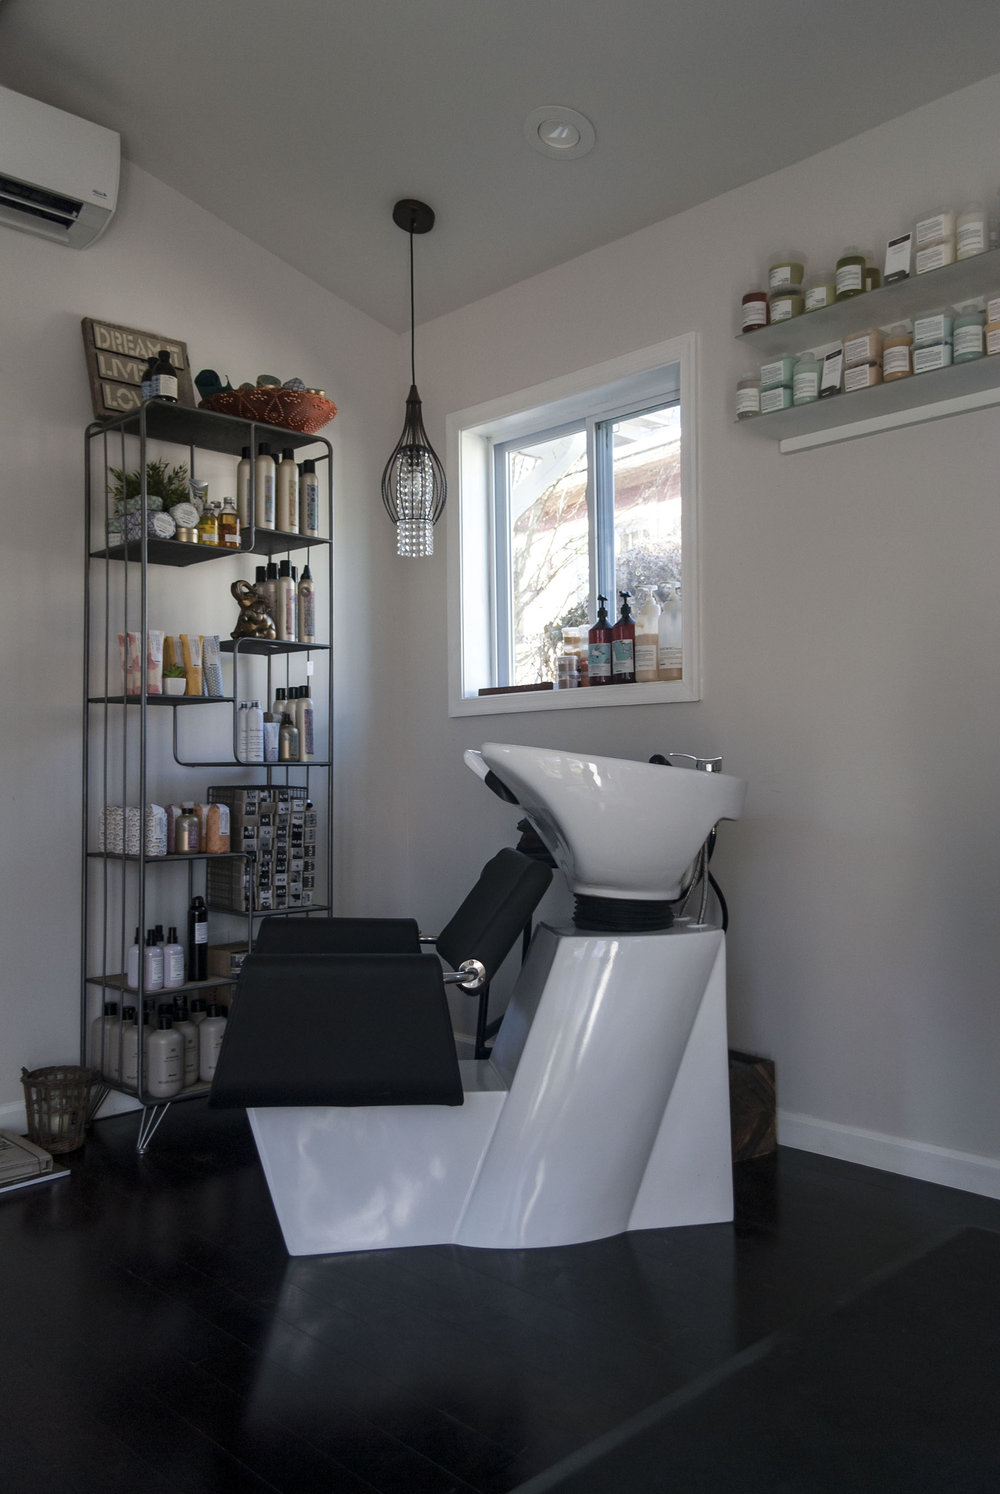 hairsalonaddition1a.jpg